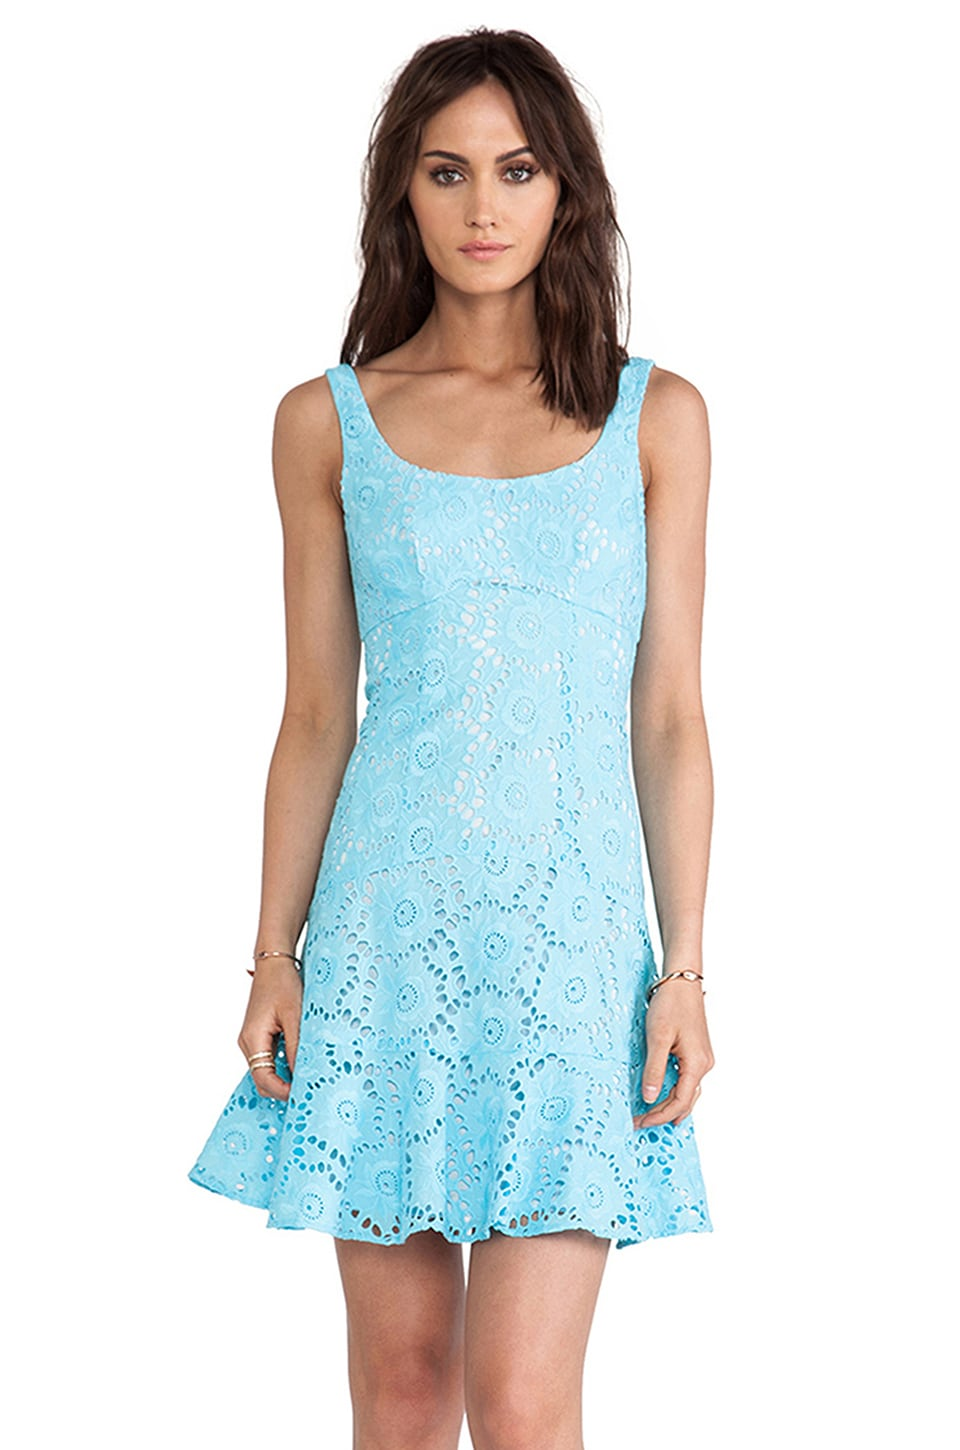 Nanette Lepore Summer Dress in Blue Sky